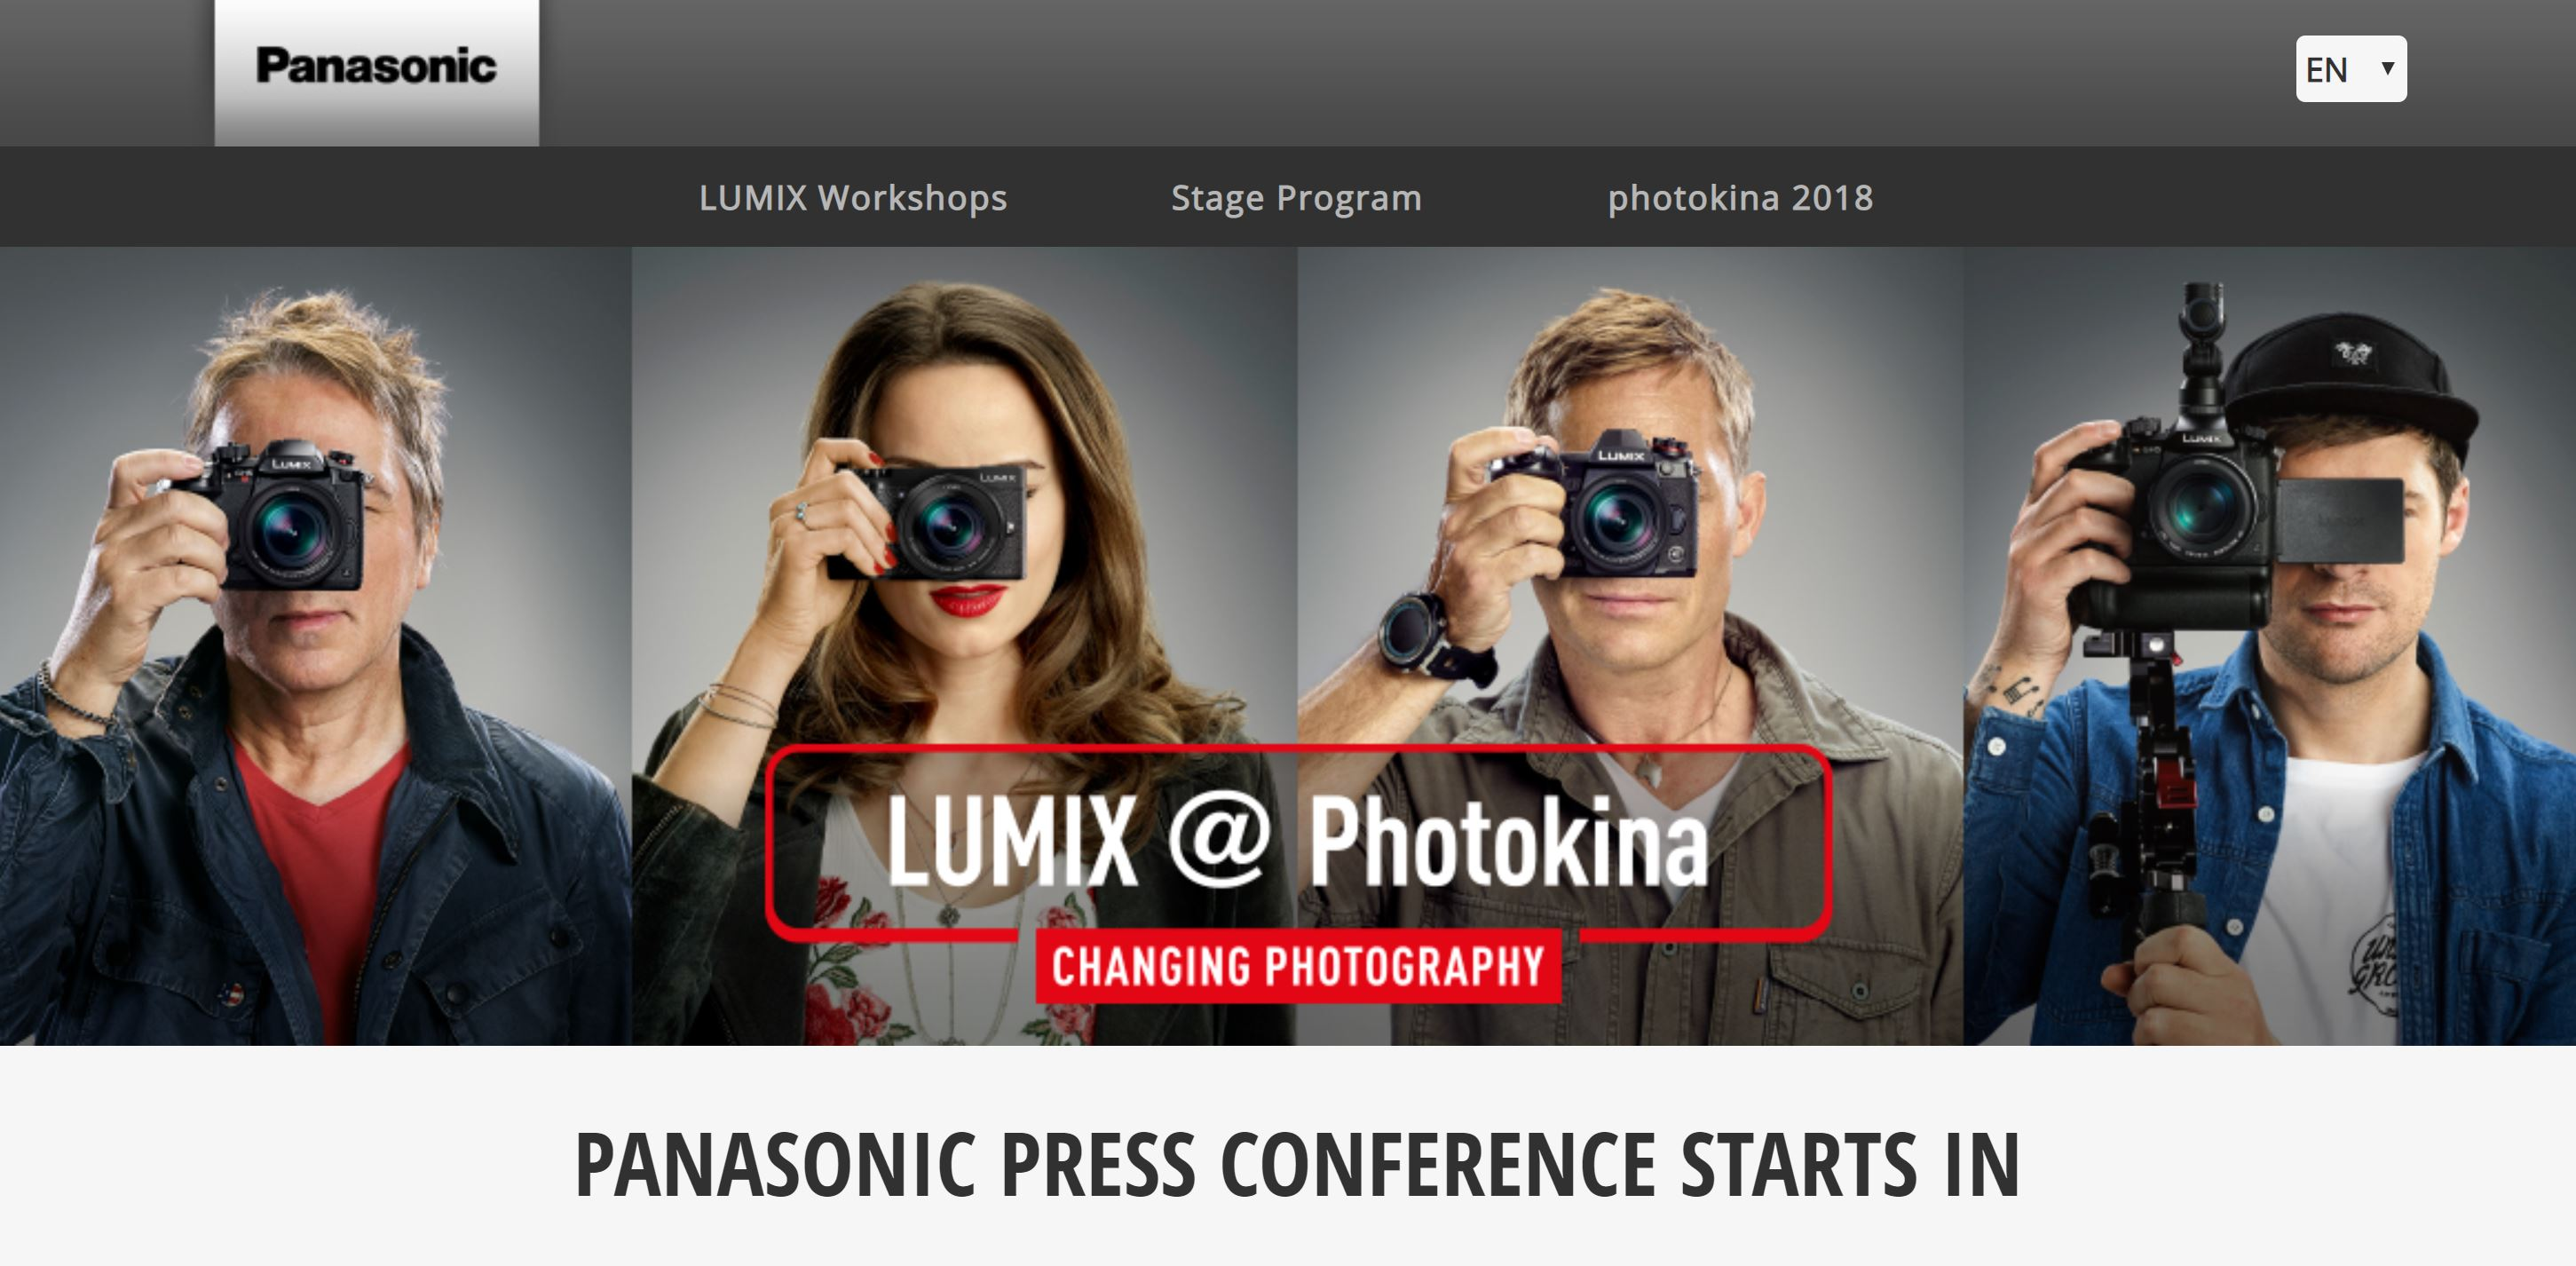 Competitor Rumors: Panasonic to Announce 2 FF Mirrorless Cameras